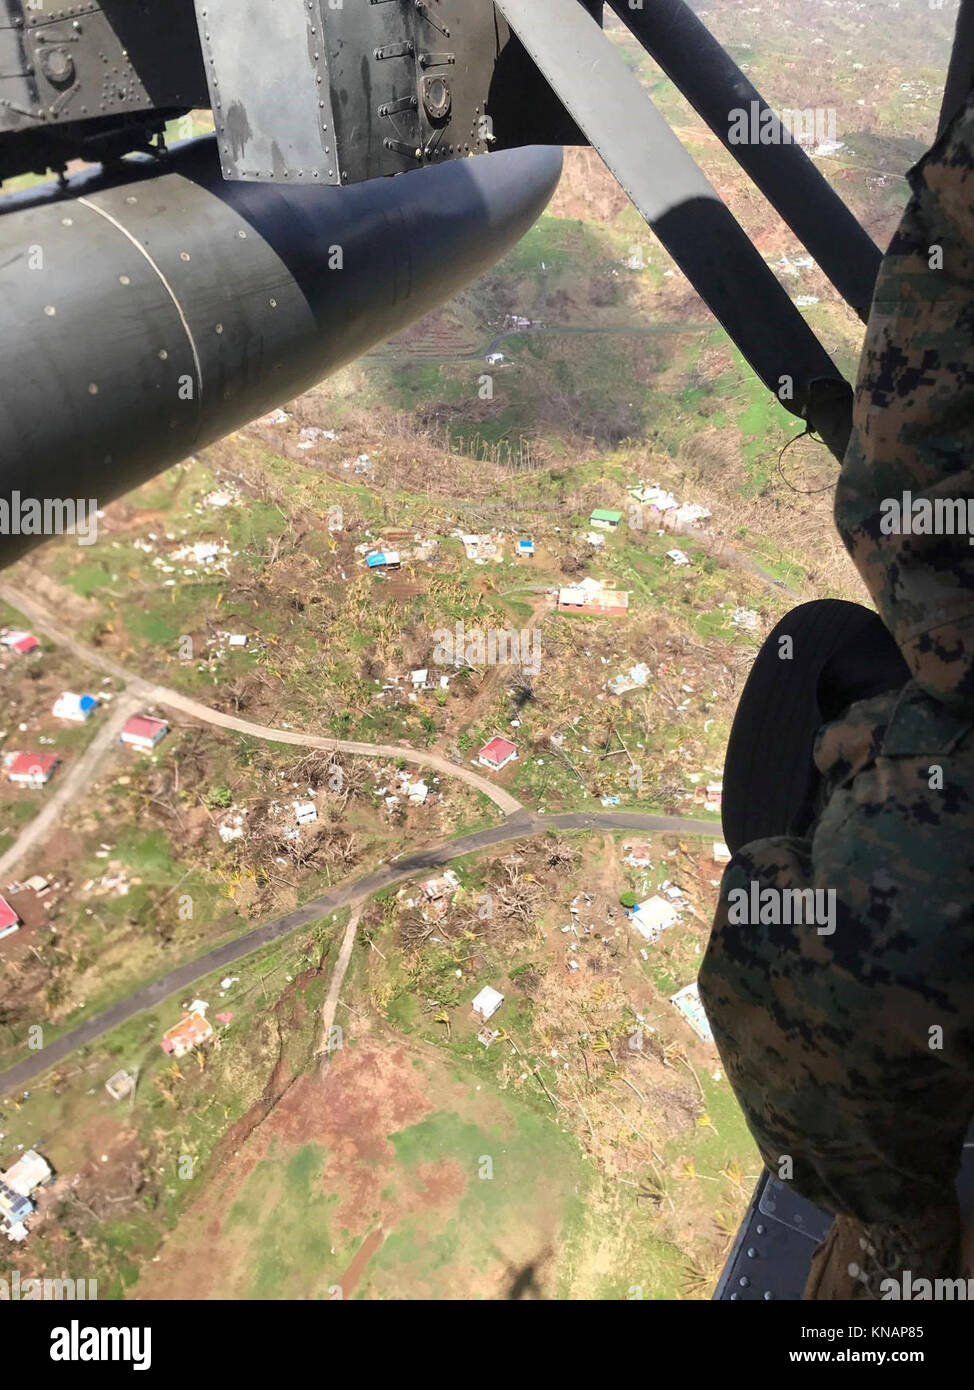 U.S. service members fly over the Caribbean island of Dominica, Oct. 9, 2017. The island was devastated by Hurricane - Stock Image